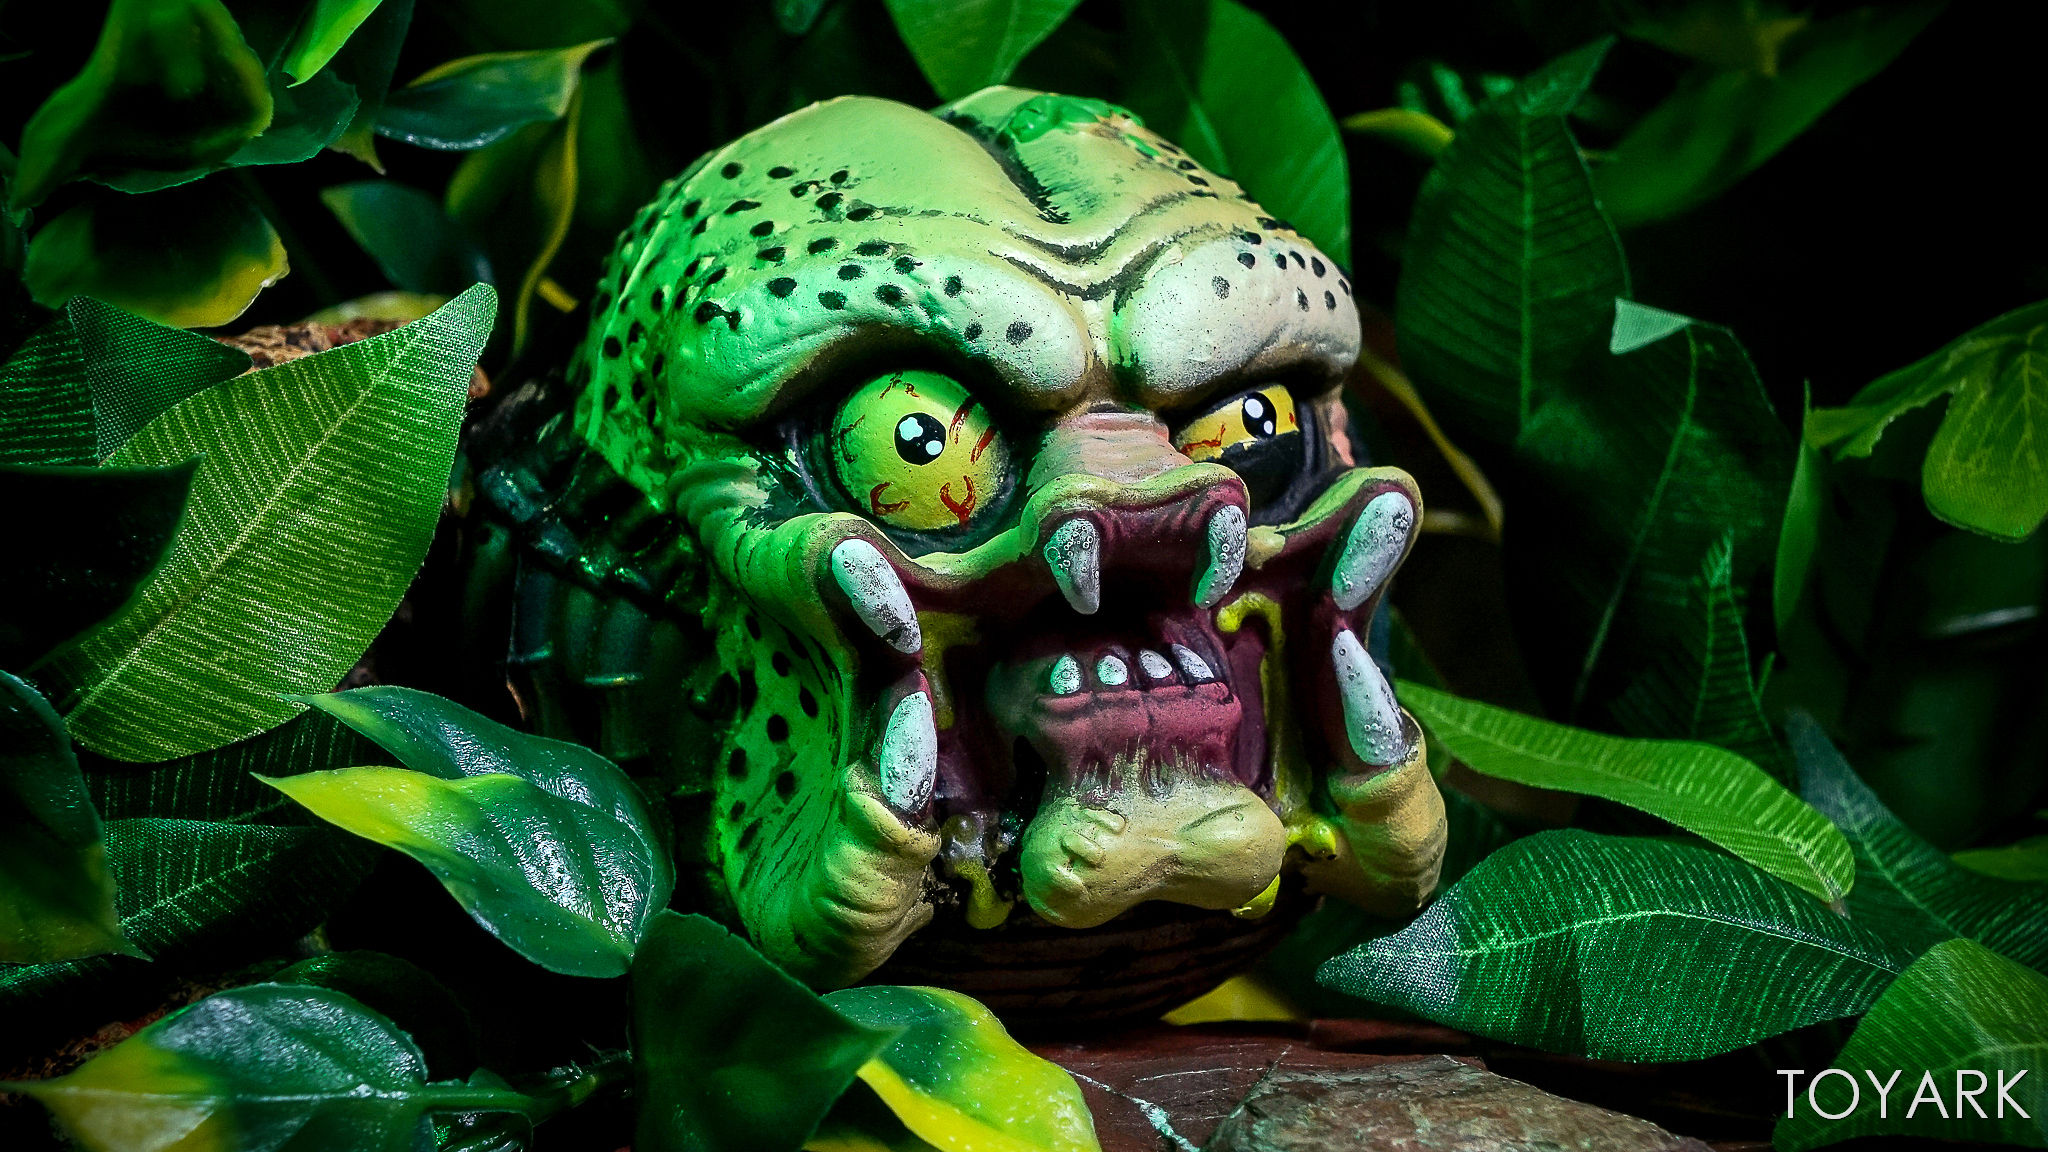 http://news.toyark.com/wp-content/uploads/sites/4/2017/09/Kidrobot-Horror-and-Sci-Fi-Madballs-035.jpg